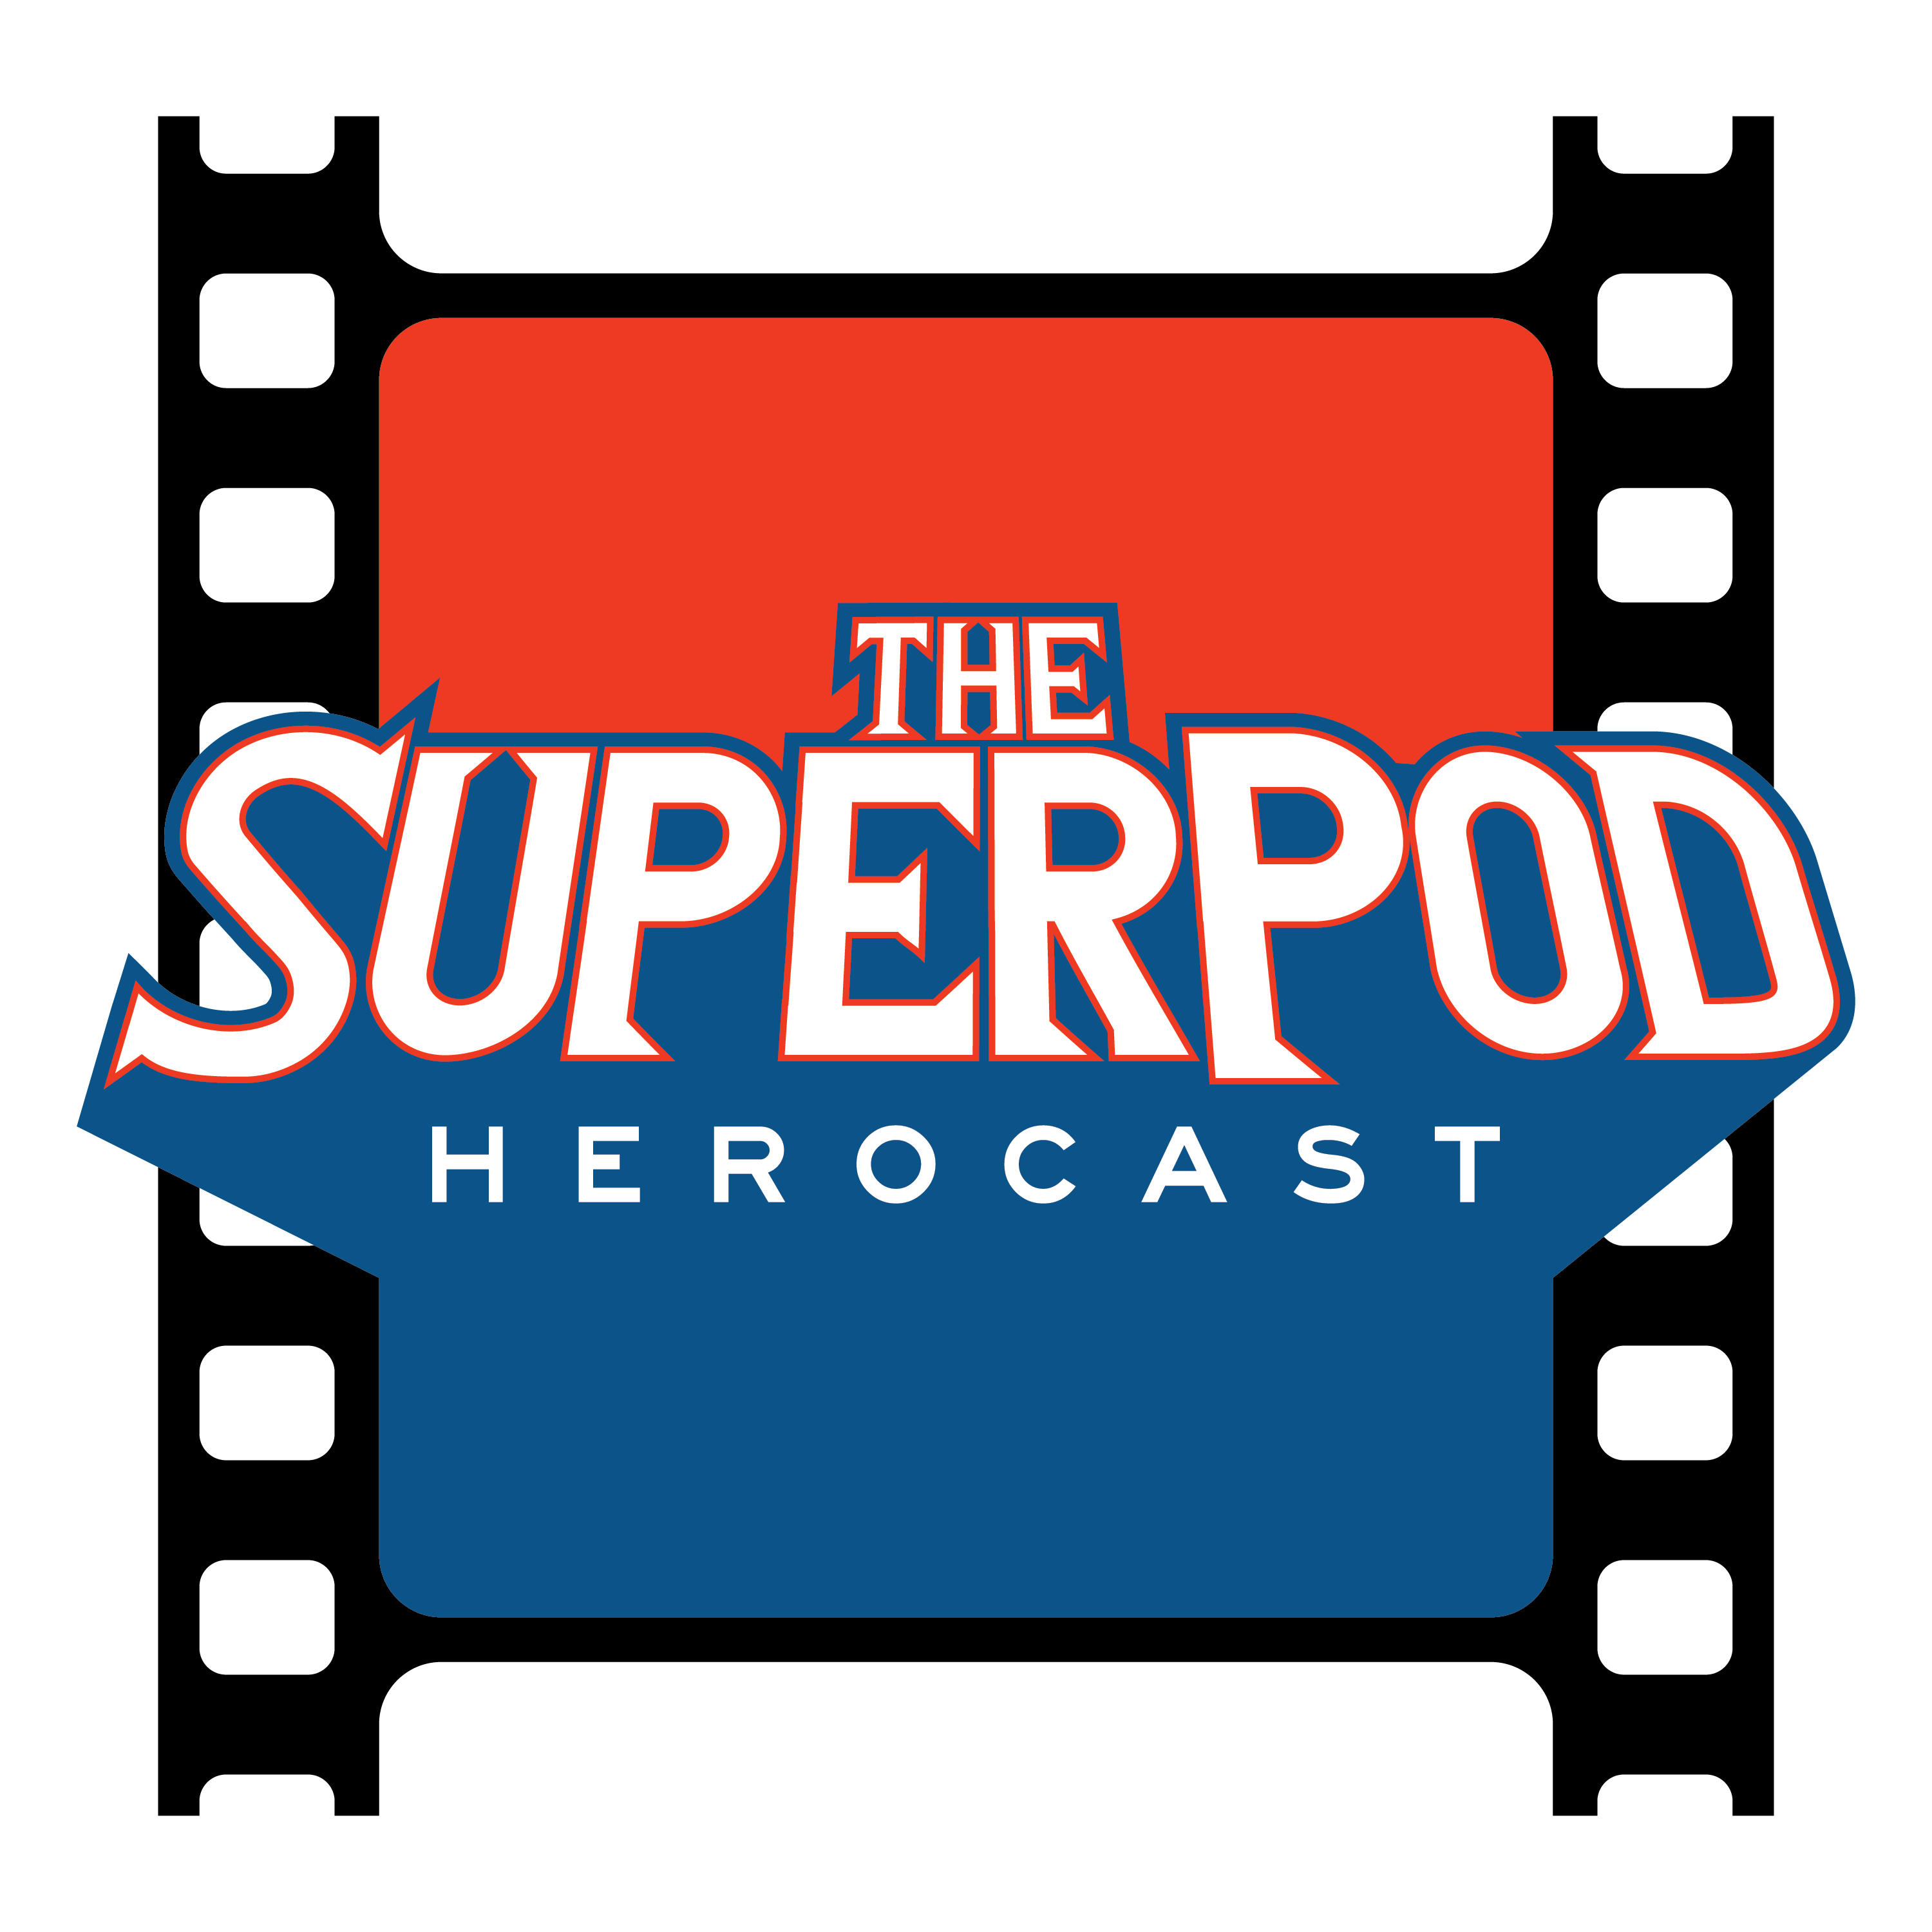 Show artwork for The SuperPodHeroCast